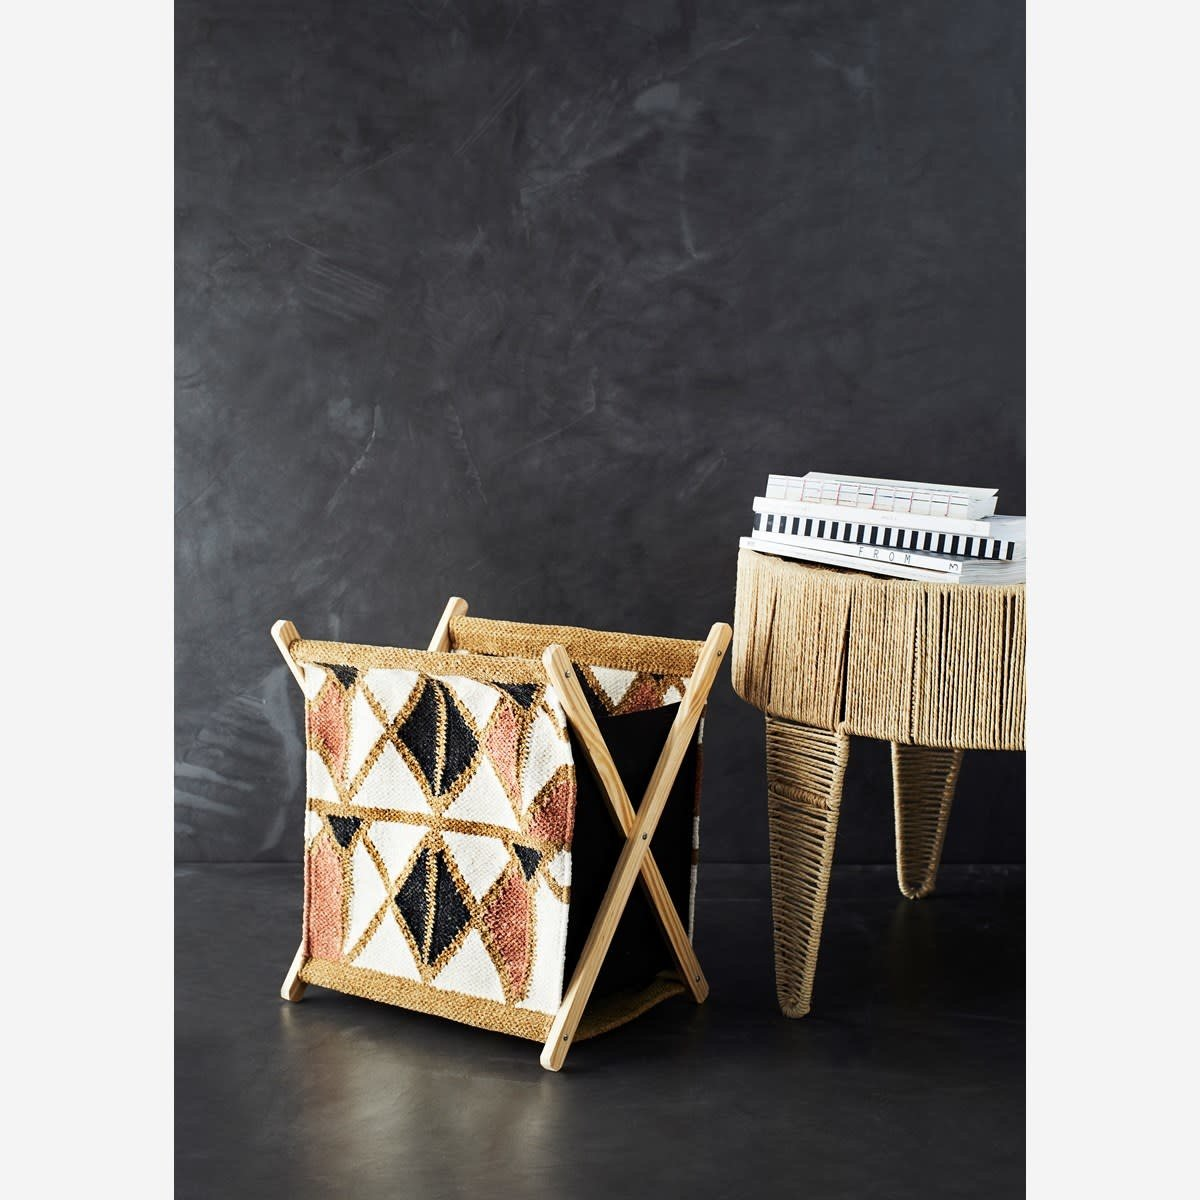 Rosy Brown MS Woven Magazine Holder